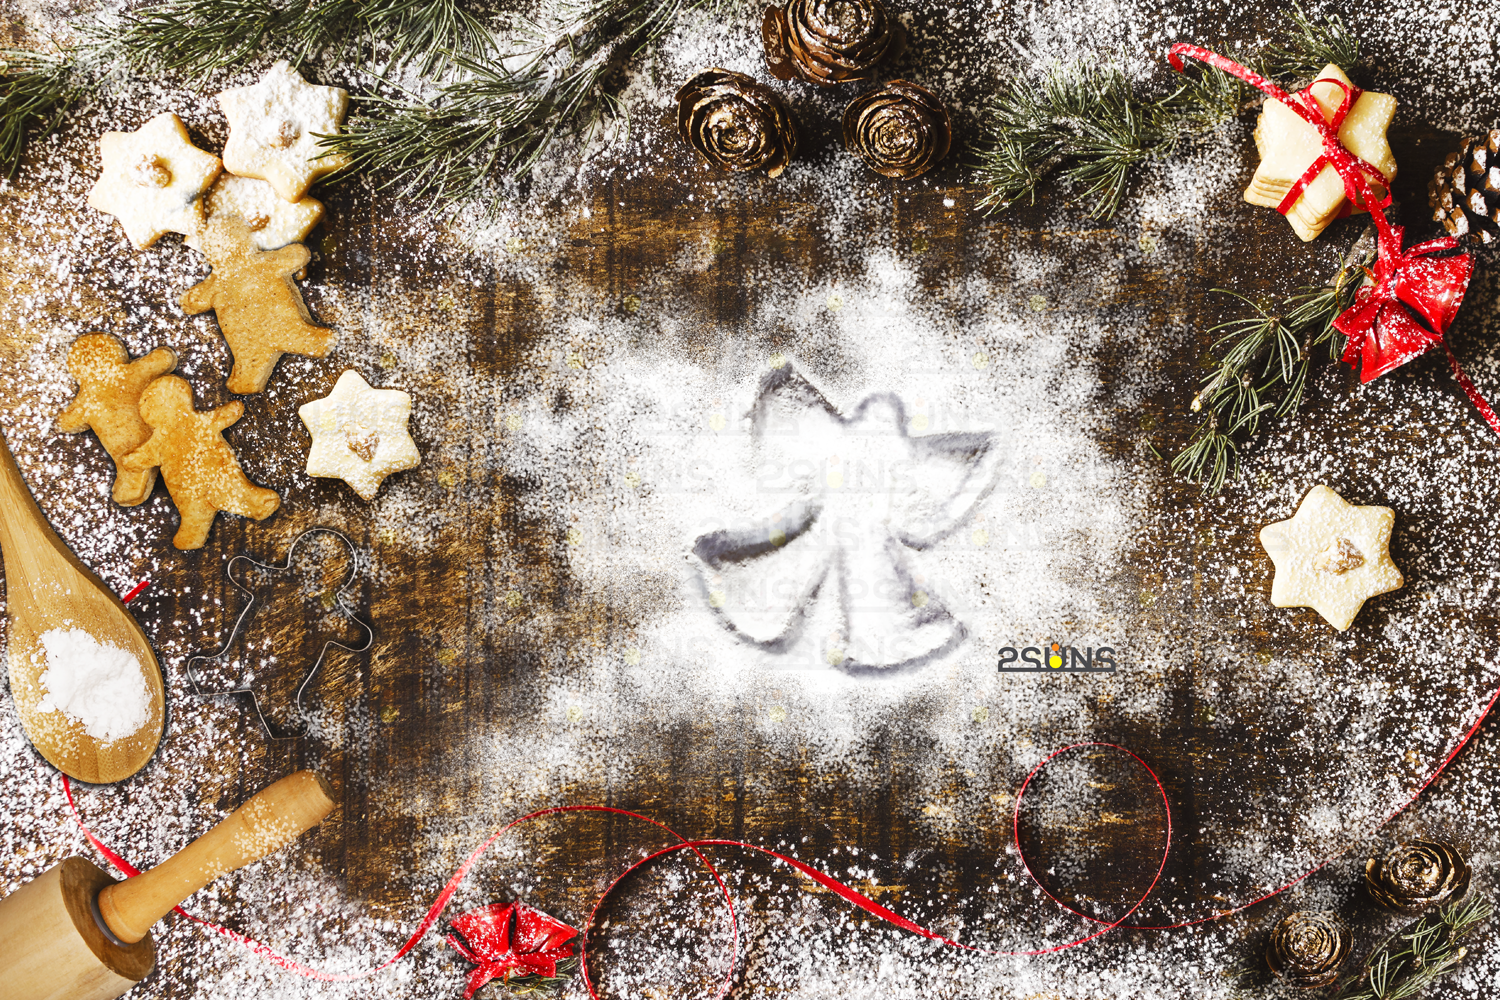 Snow Angel And Baking Flat Backdrop Photoshop Overlay By 2suns